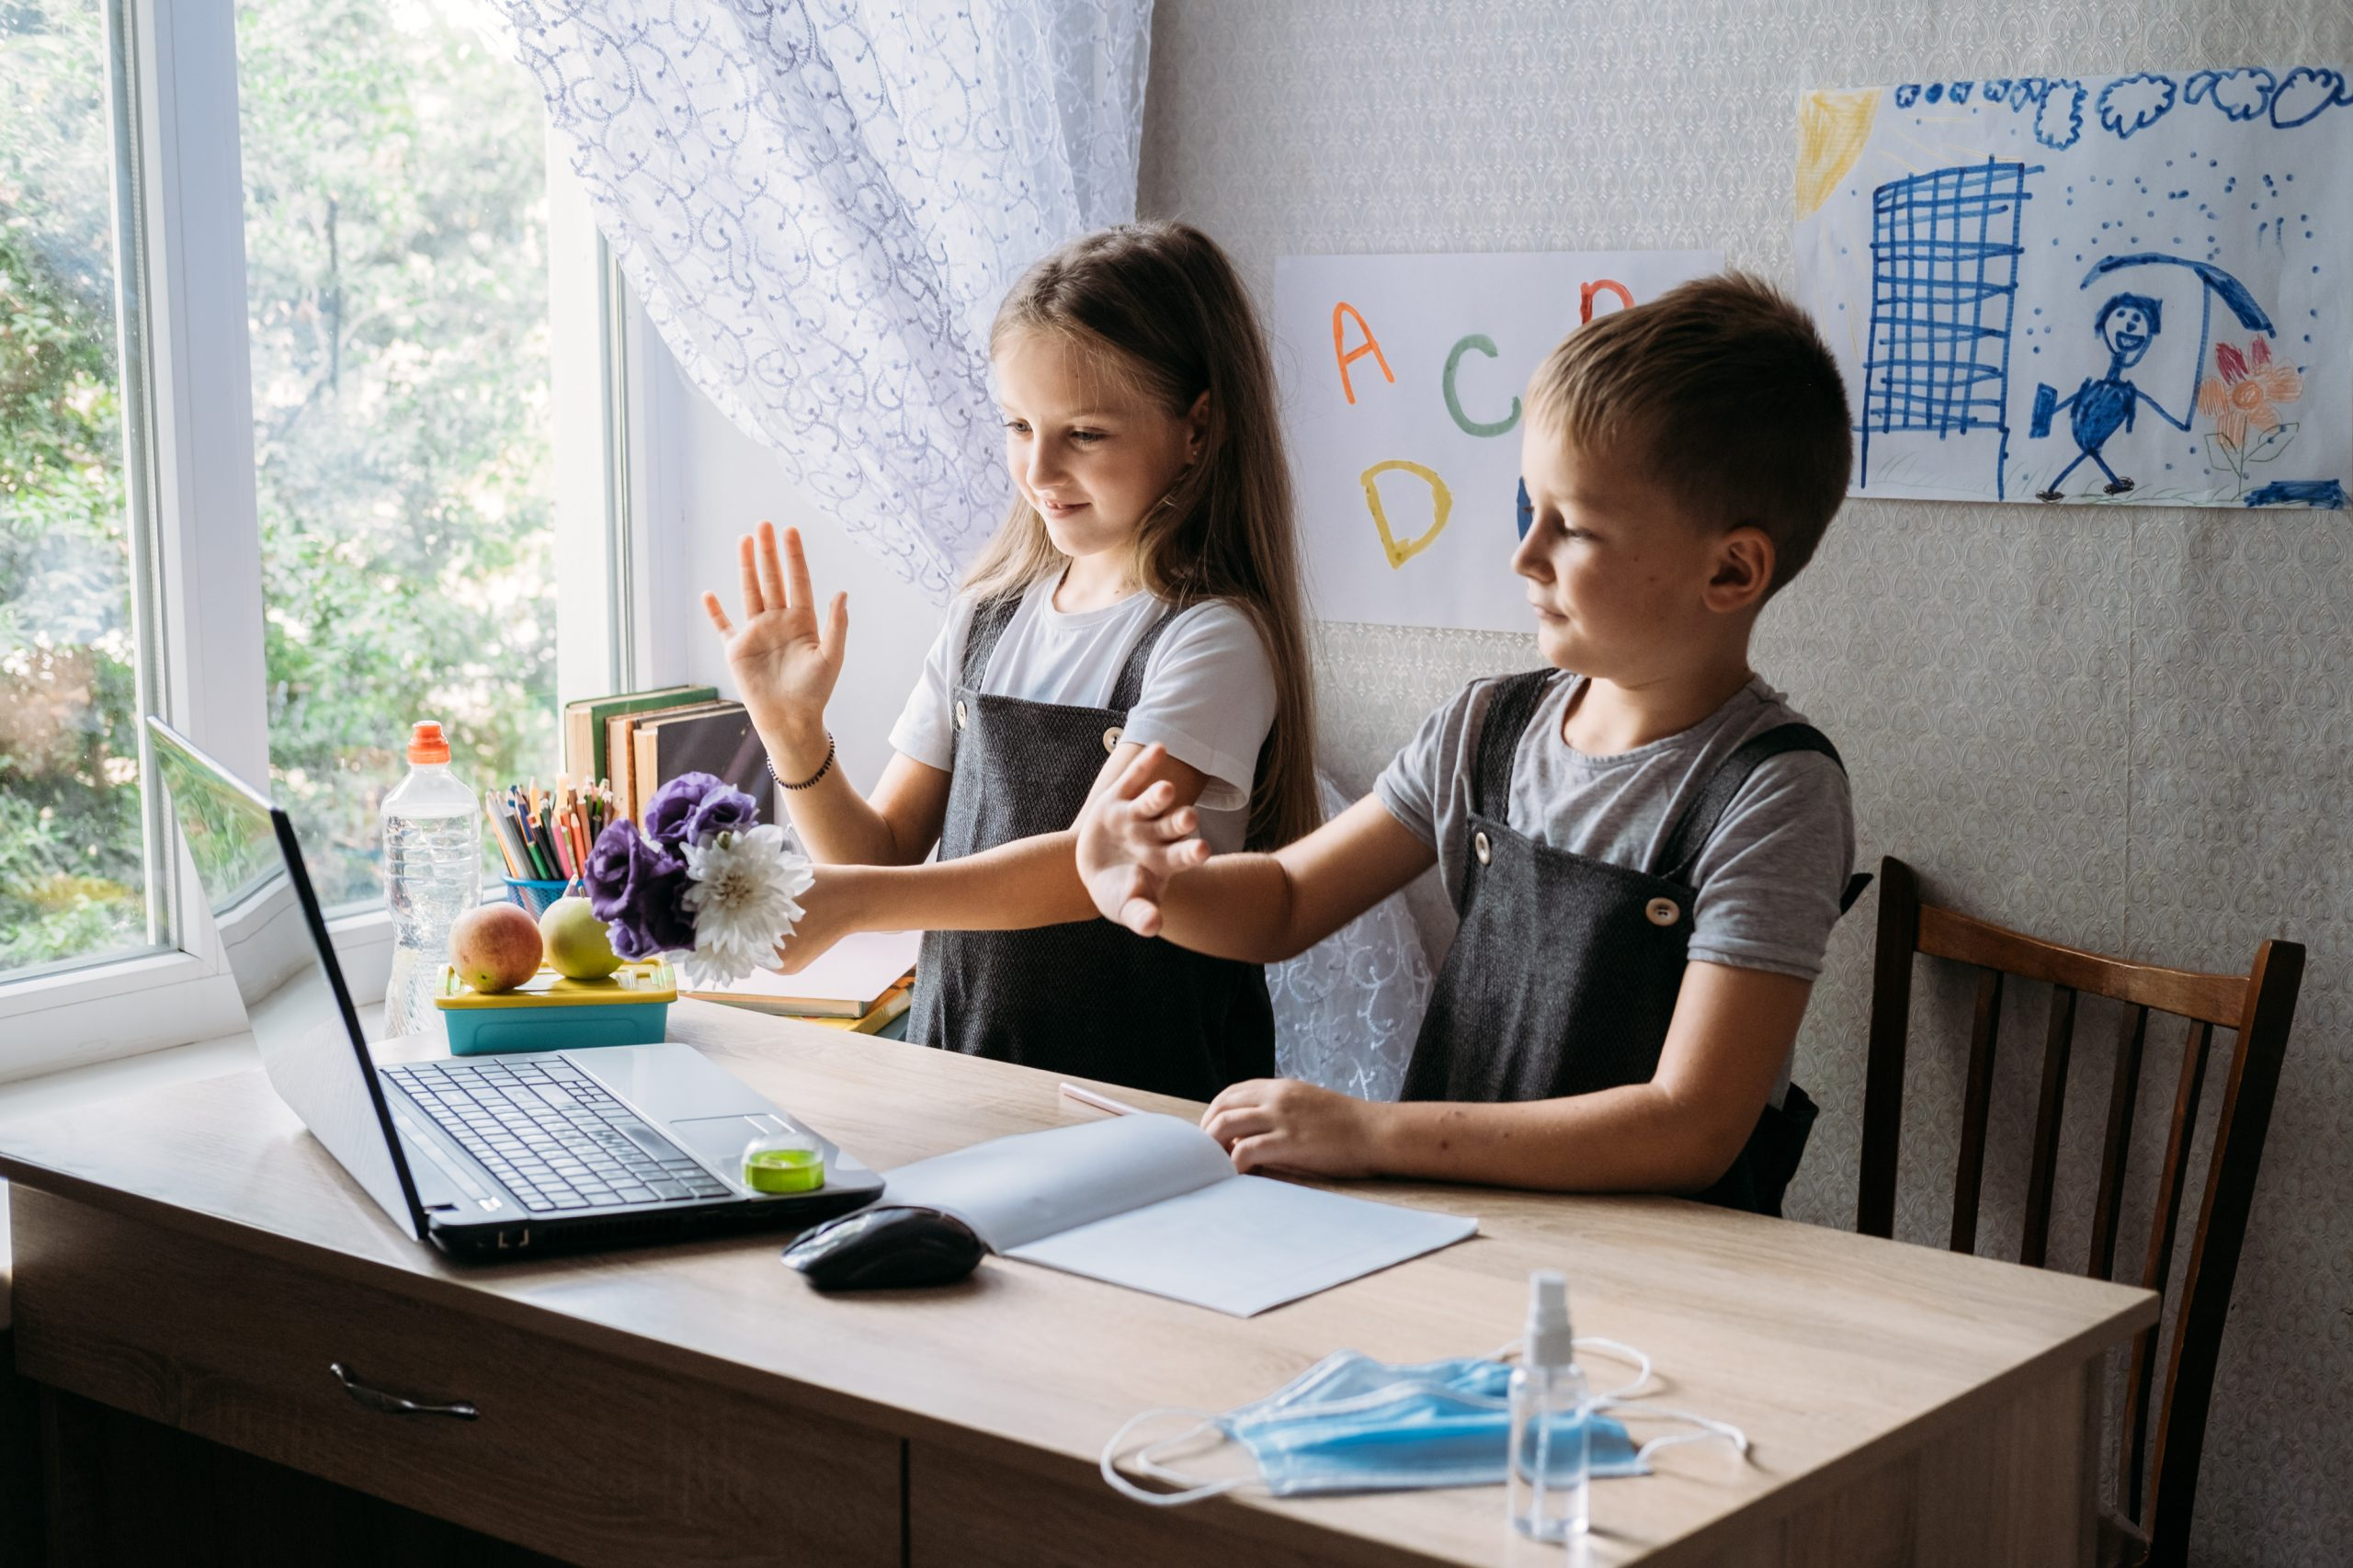 Schoolkids boy and girl using laptop for online study during homeschooling at home. Homeschooling, online study, home quarantine online learning education corona virus or online technology